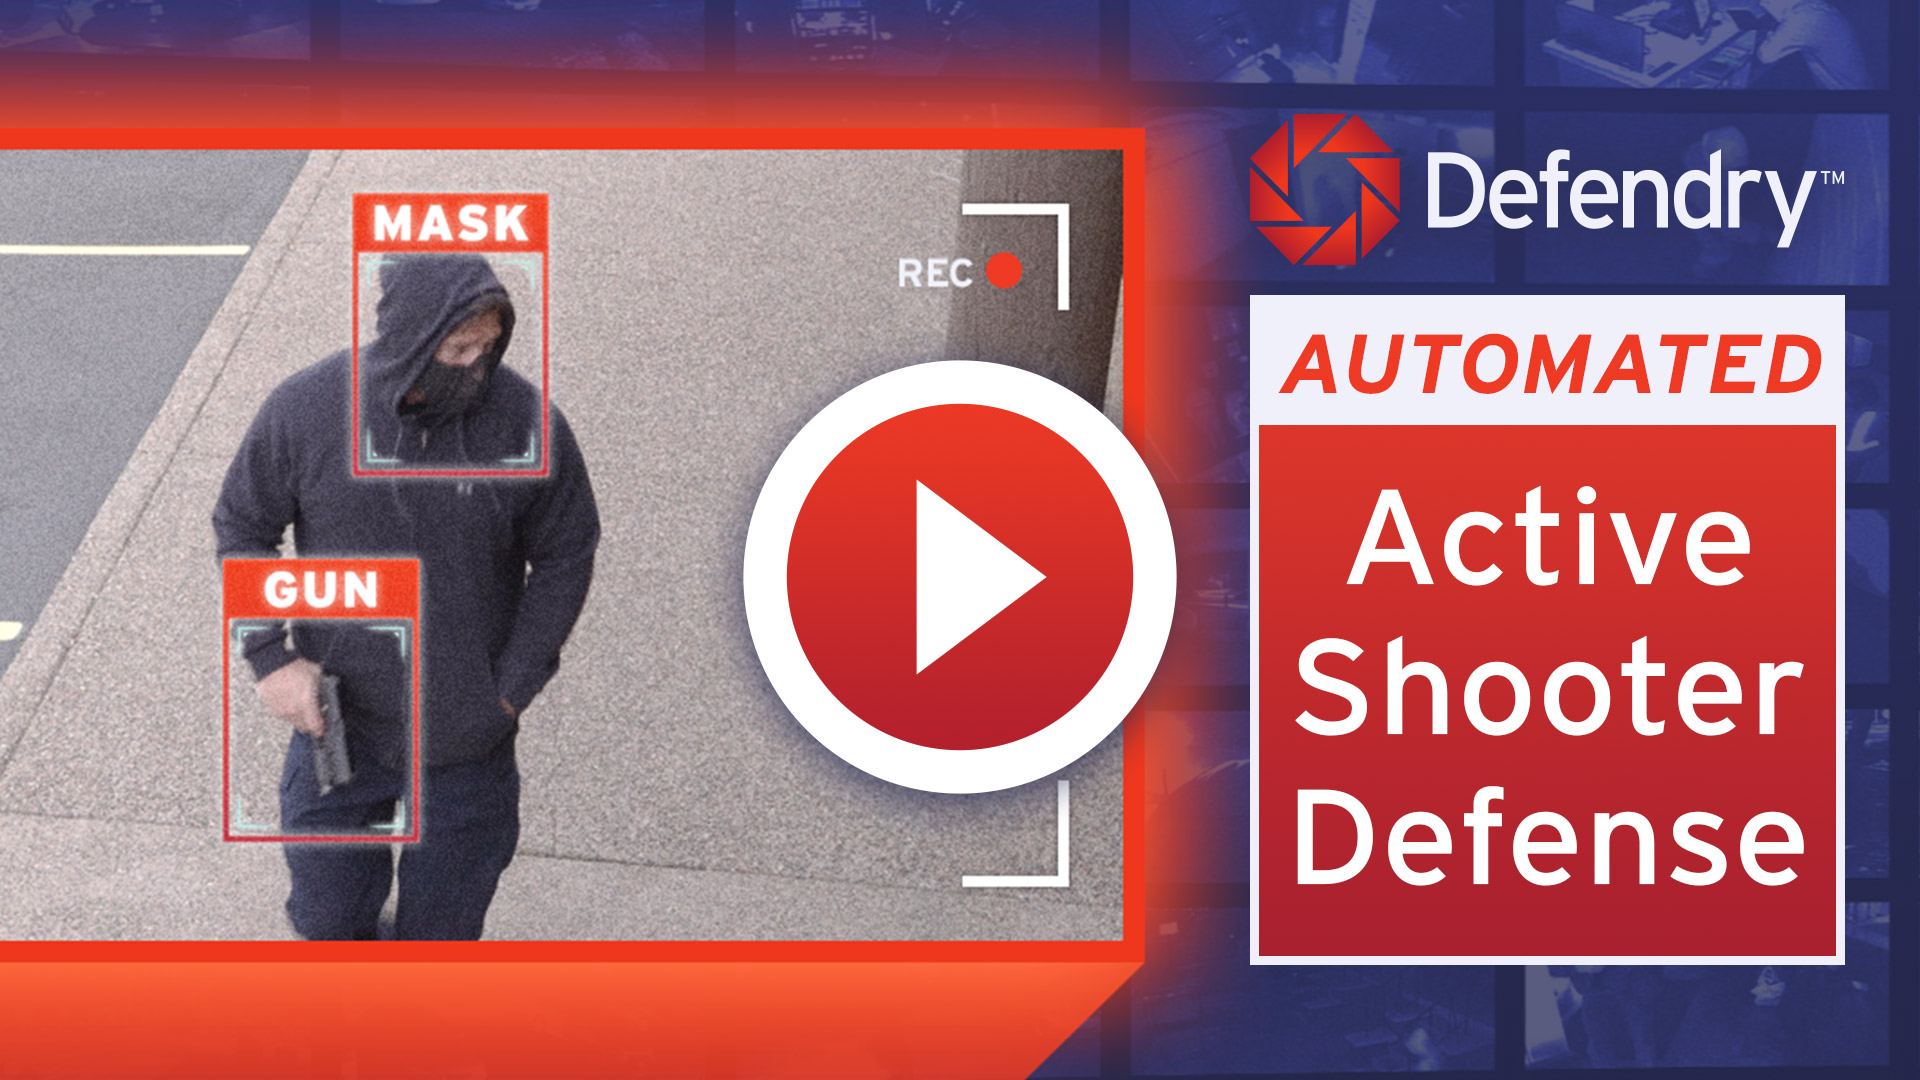 Defendry: Automated Active Shooter Defense Security System